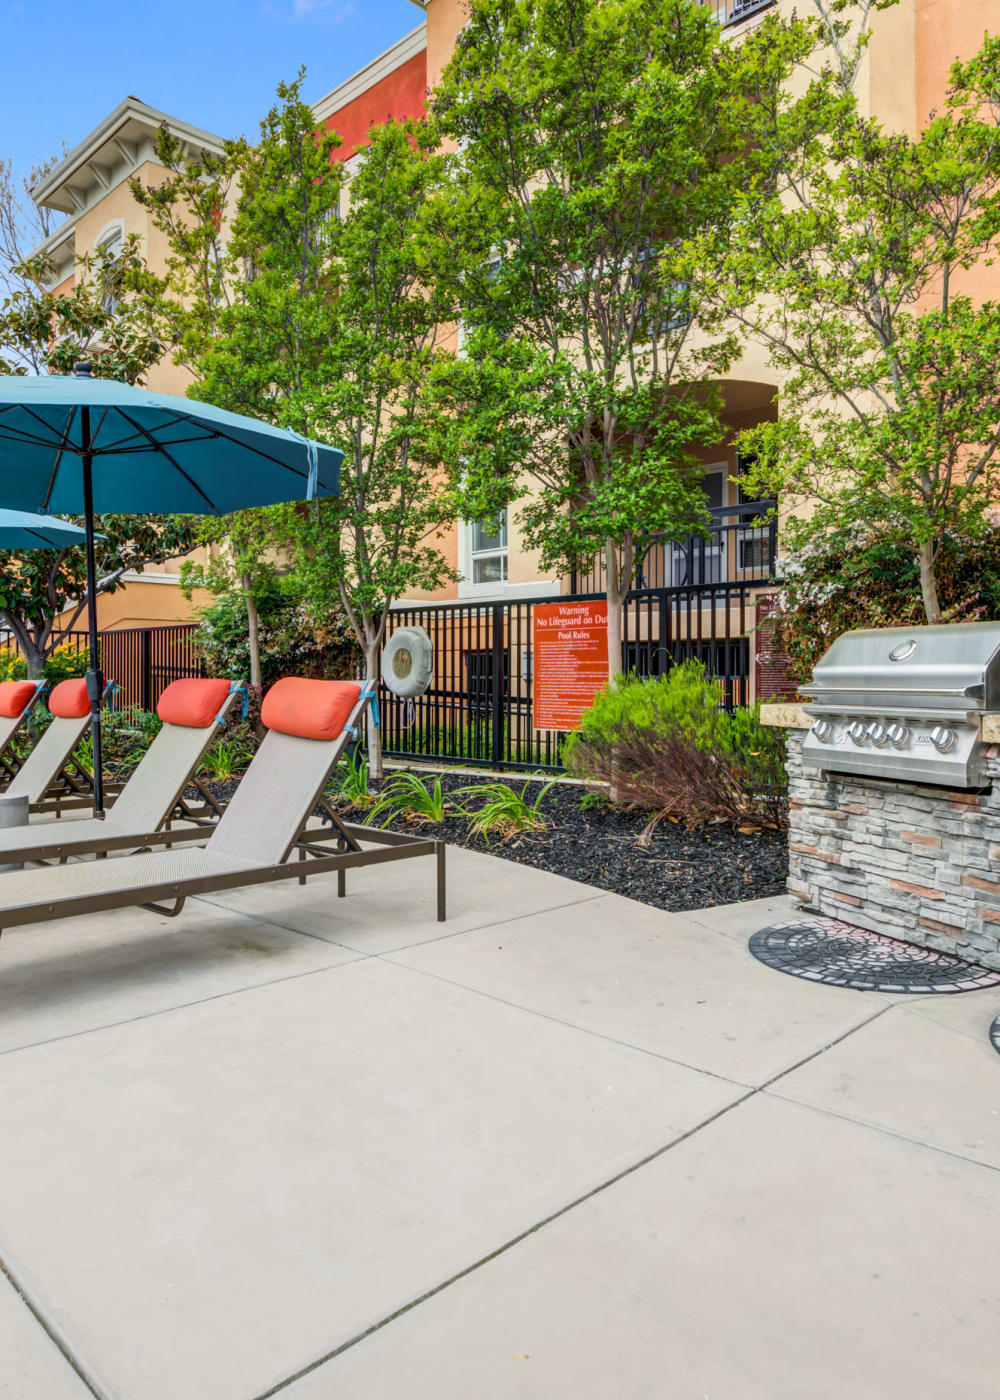 BBQ area on a beautiful afternoon at Villa Del Sol in Sunnyvale, California